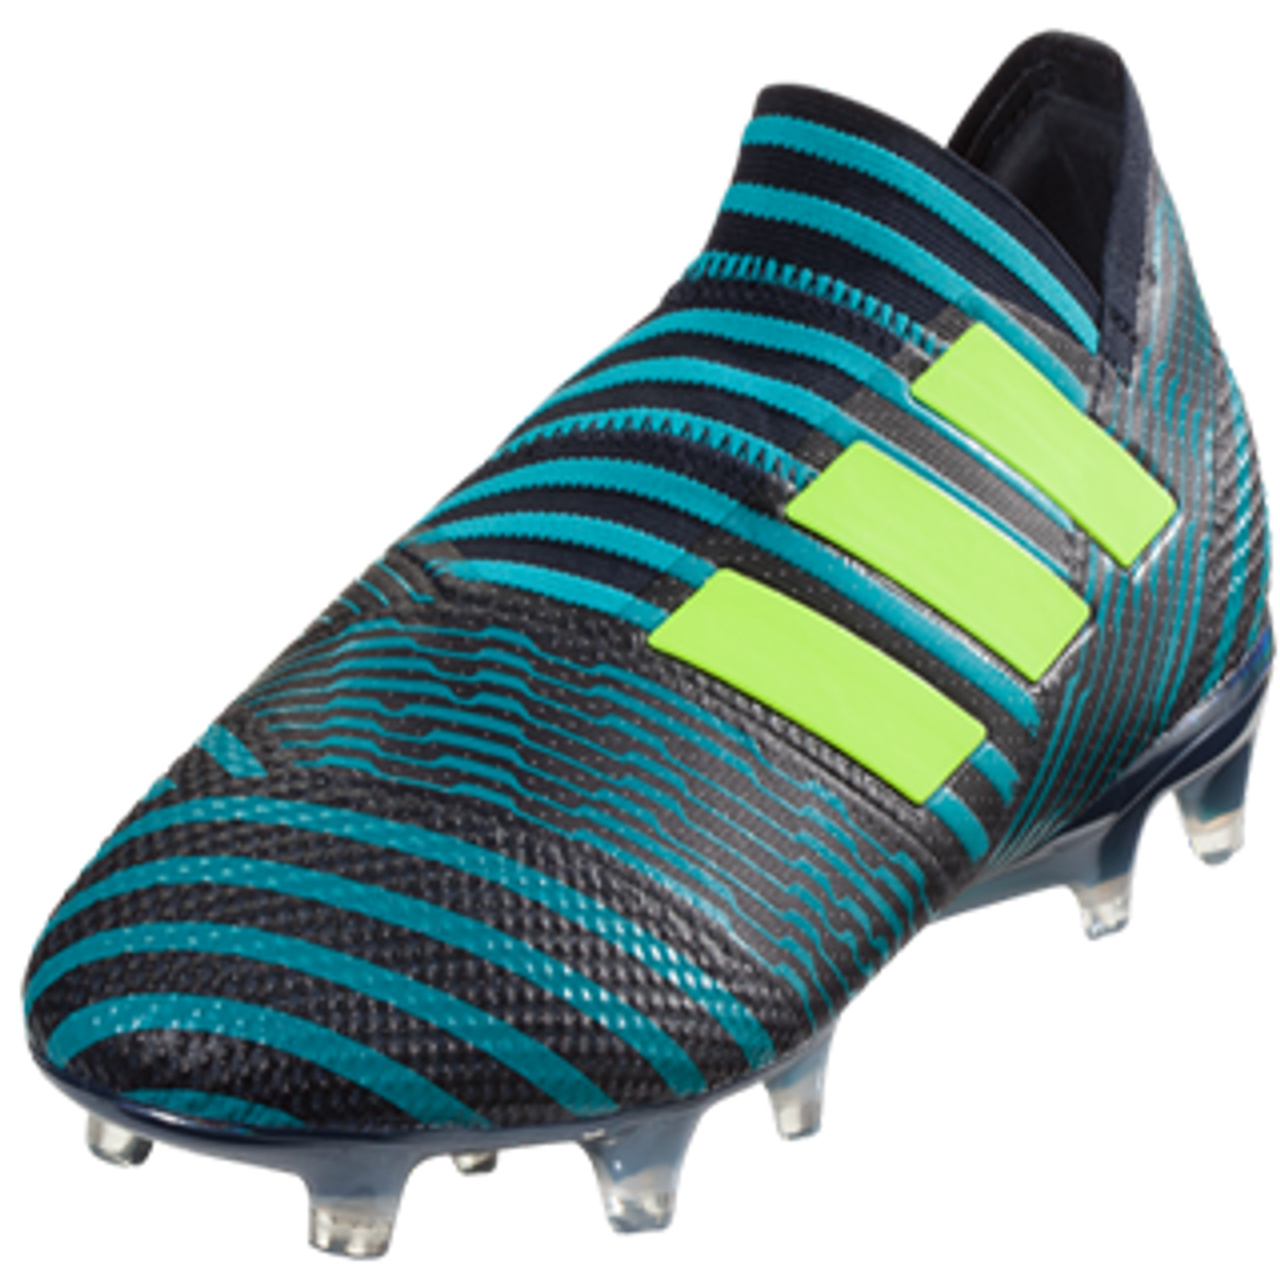 7d577ae85 adidas Nemeziz 17+ 360Agility FG Soccer Cleat - Legend Ink/Solar Yellow/Energy  Blue - Soccer Plus